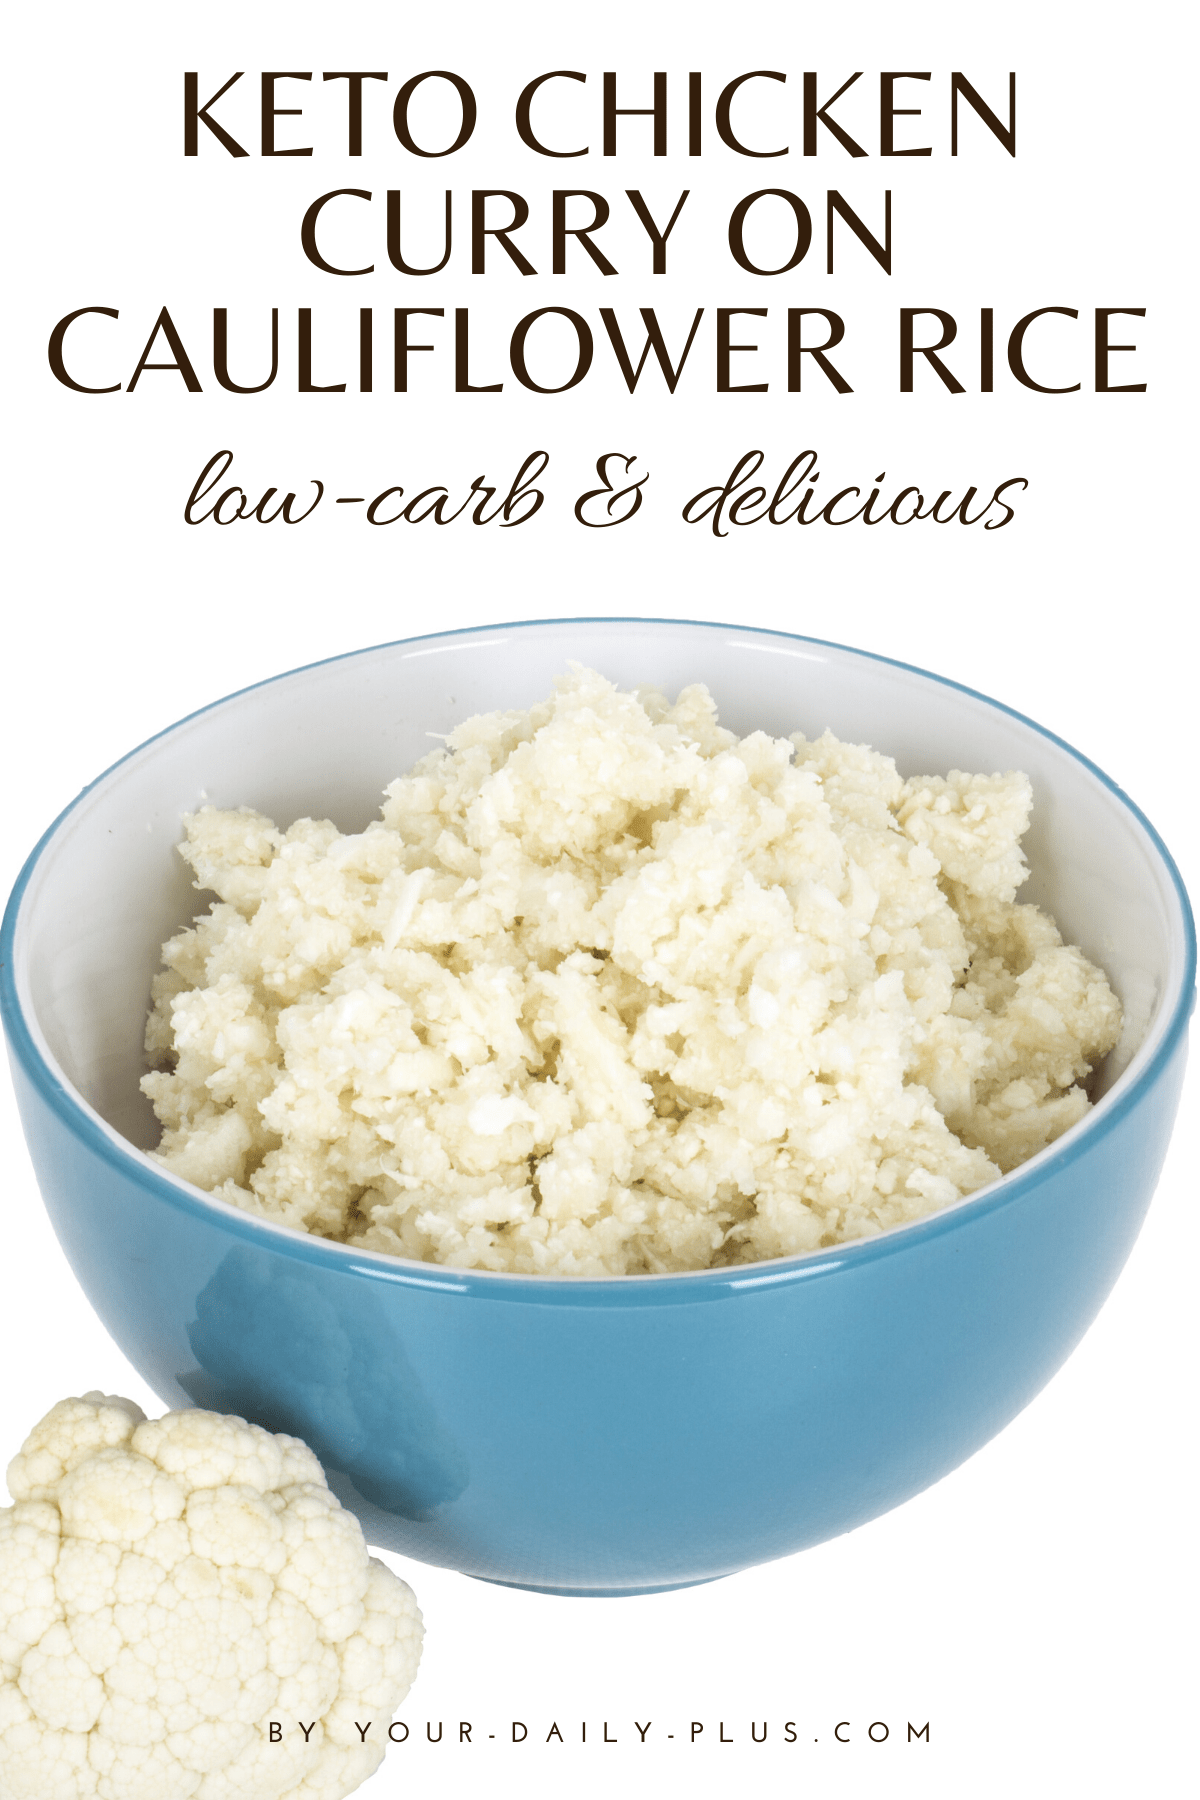 Delicious chicken curry made low-carb with cauliflower rice. The perfect keto dinner!